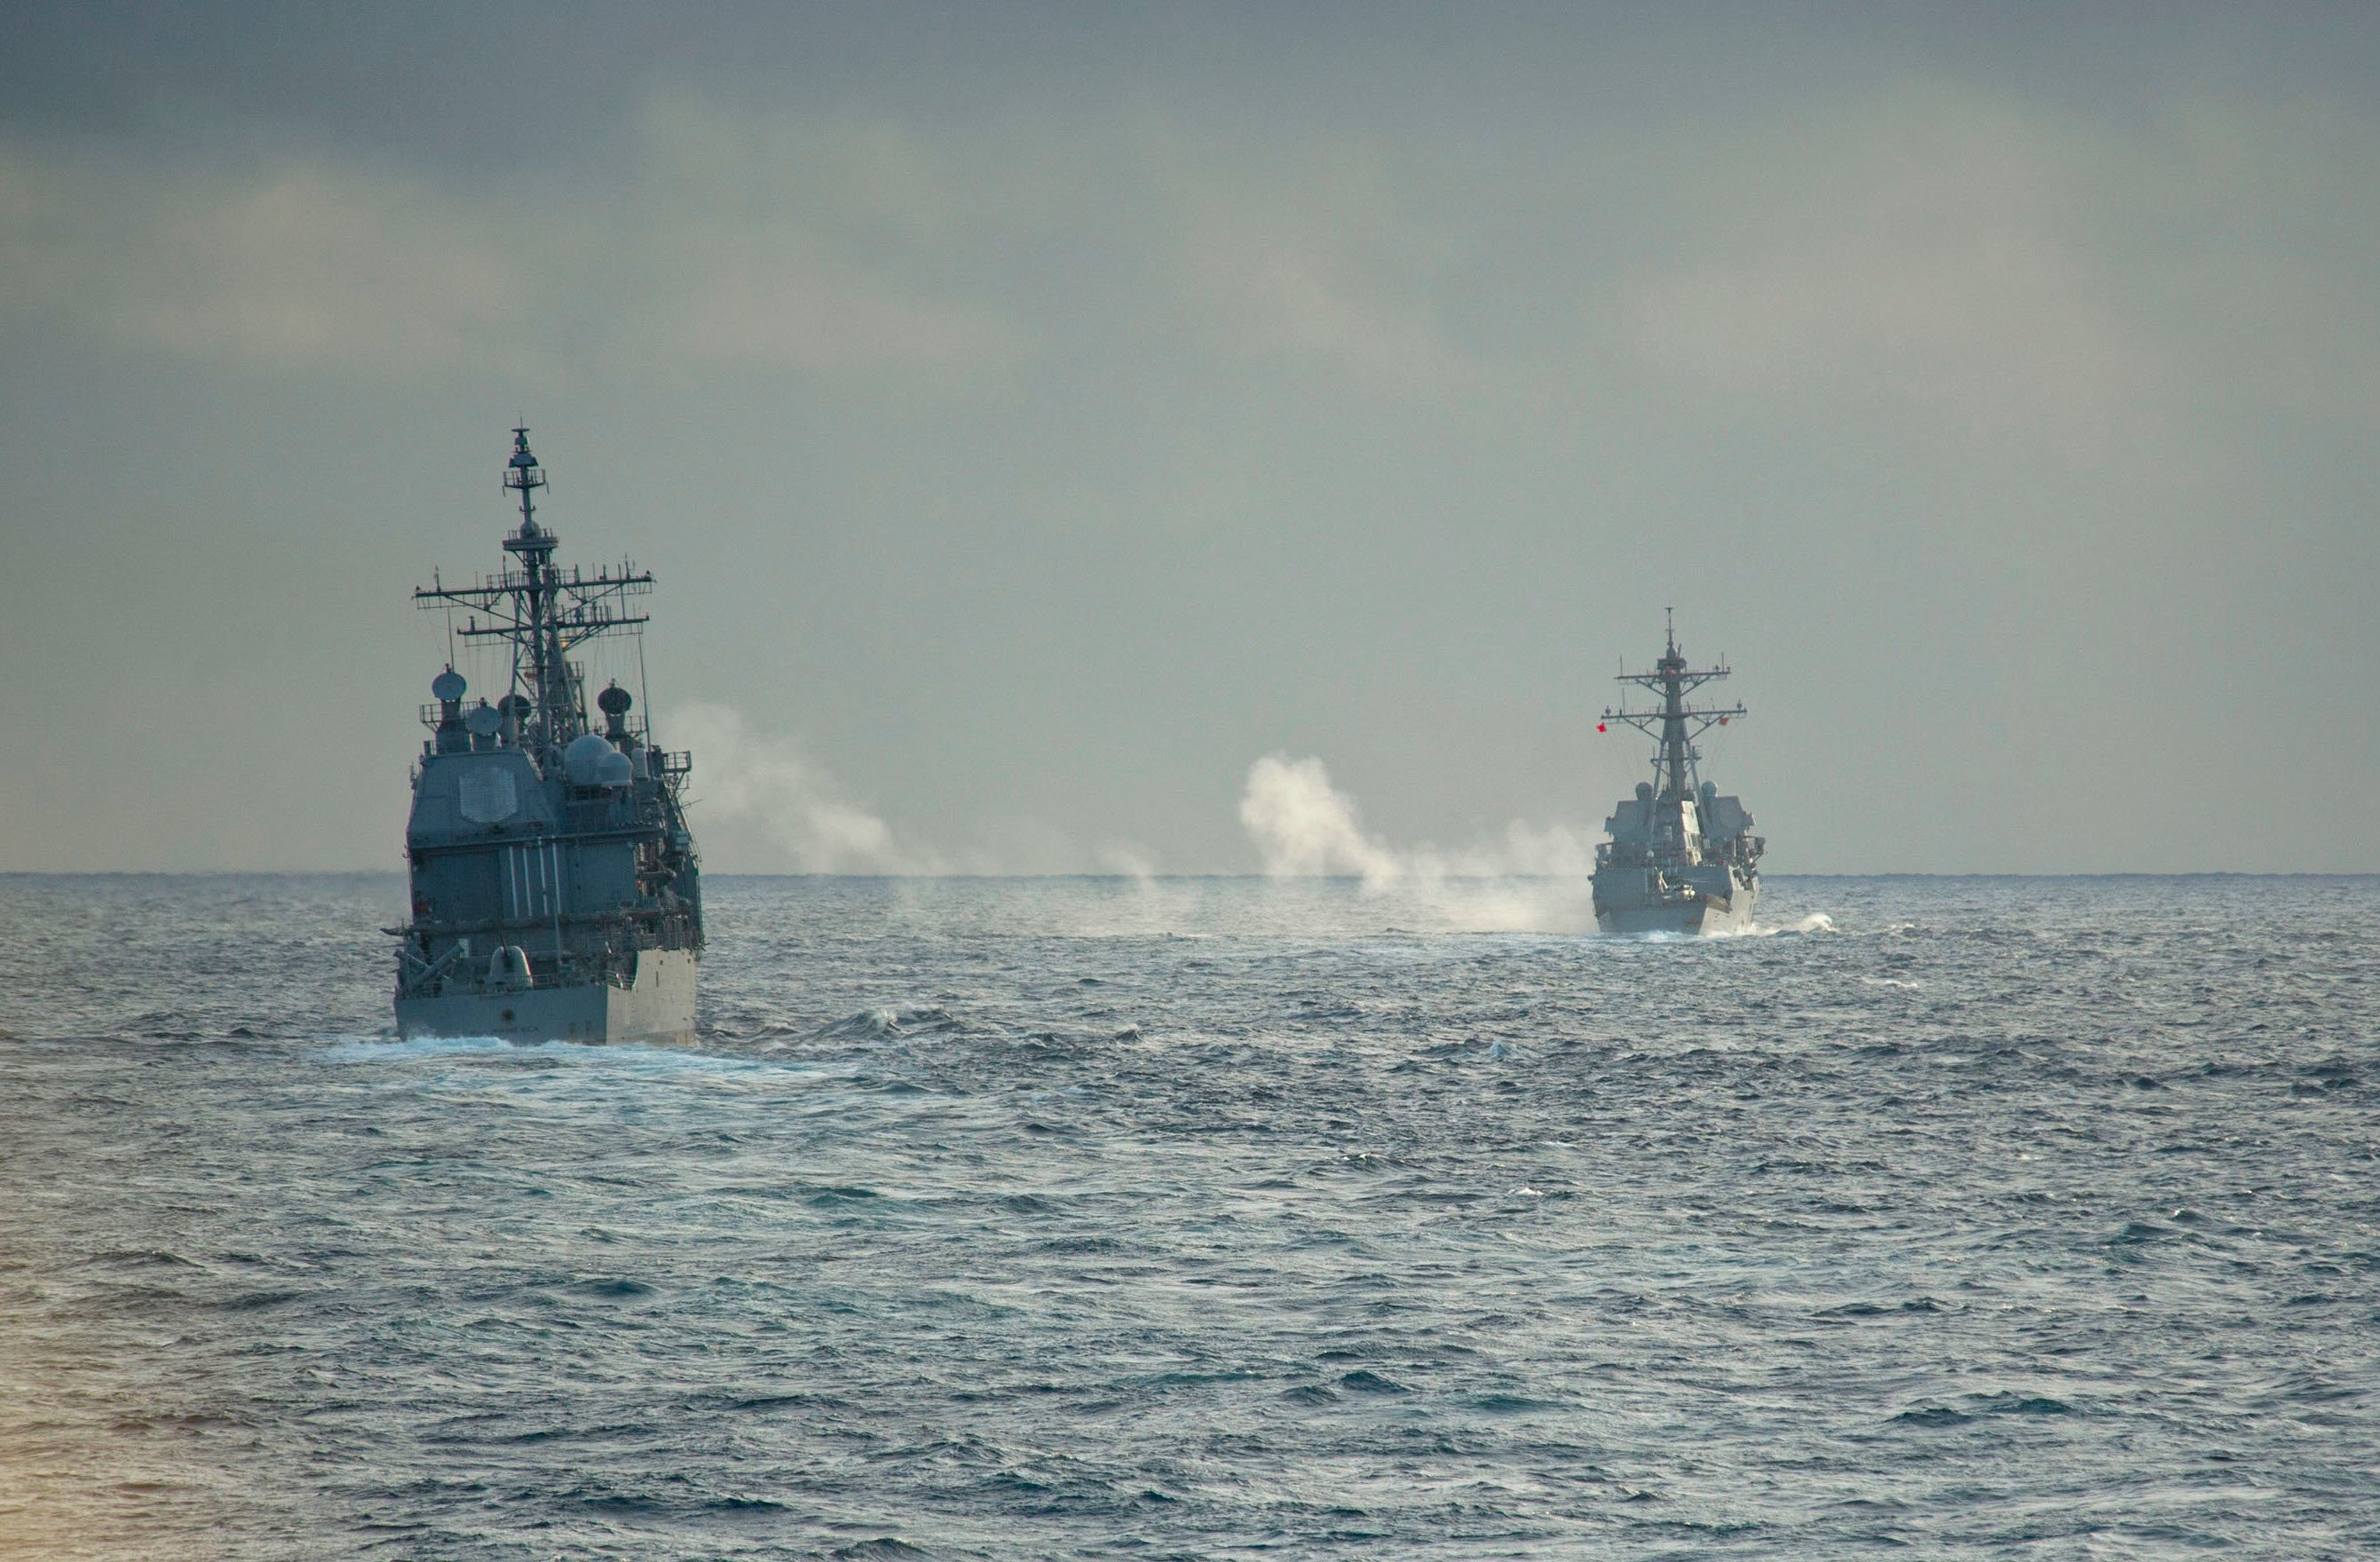 USS Philippine Sea (CG-58), right, fires a 5-inch gun during a live fire exercise with the guided-missile destroyers USS Truxton (DDG-103) on Feb. 20, 2014. US Navy Photo